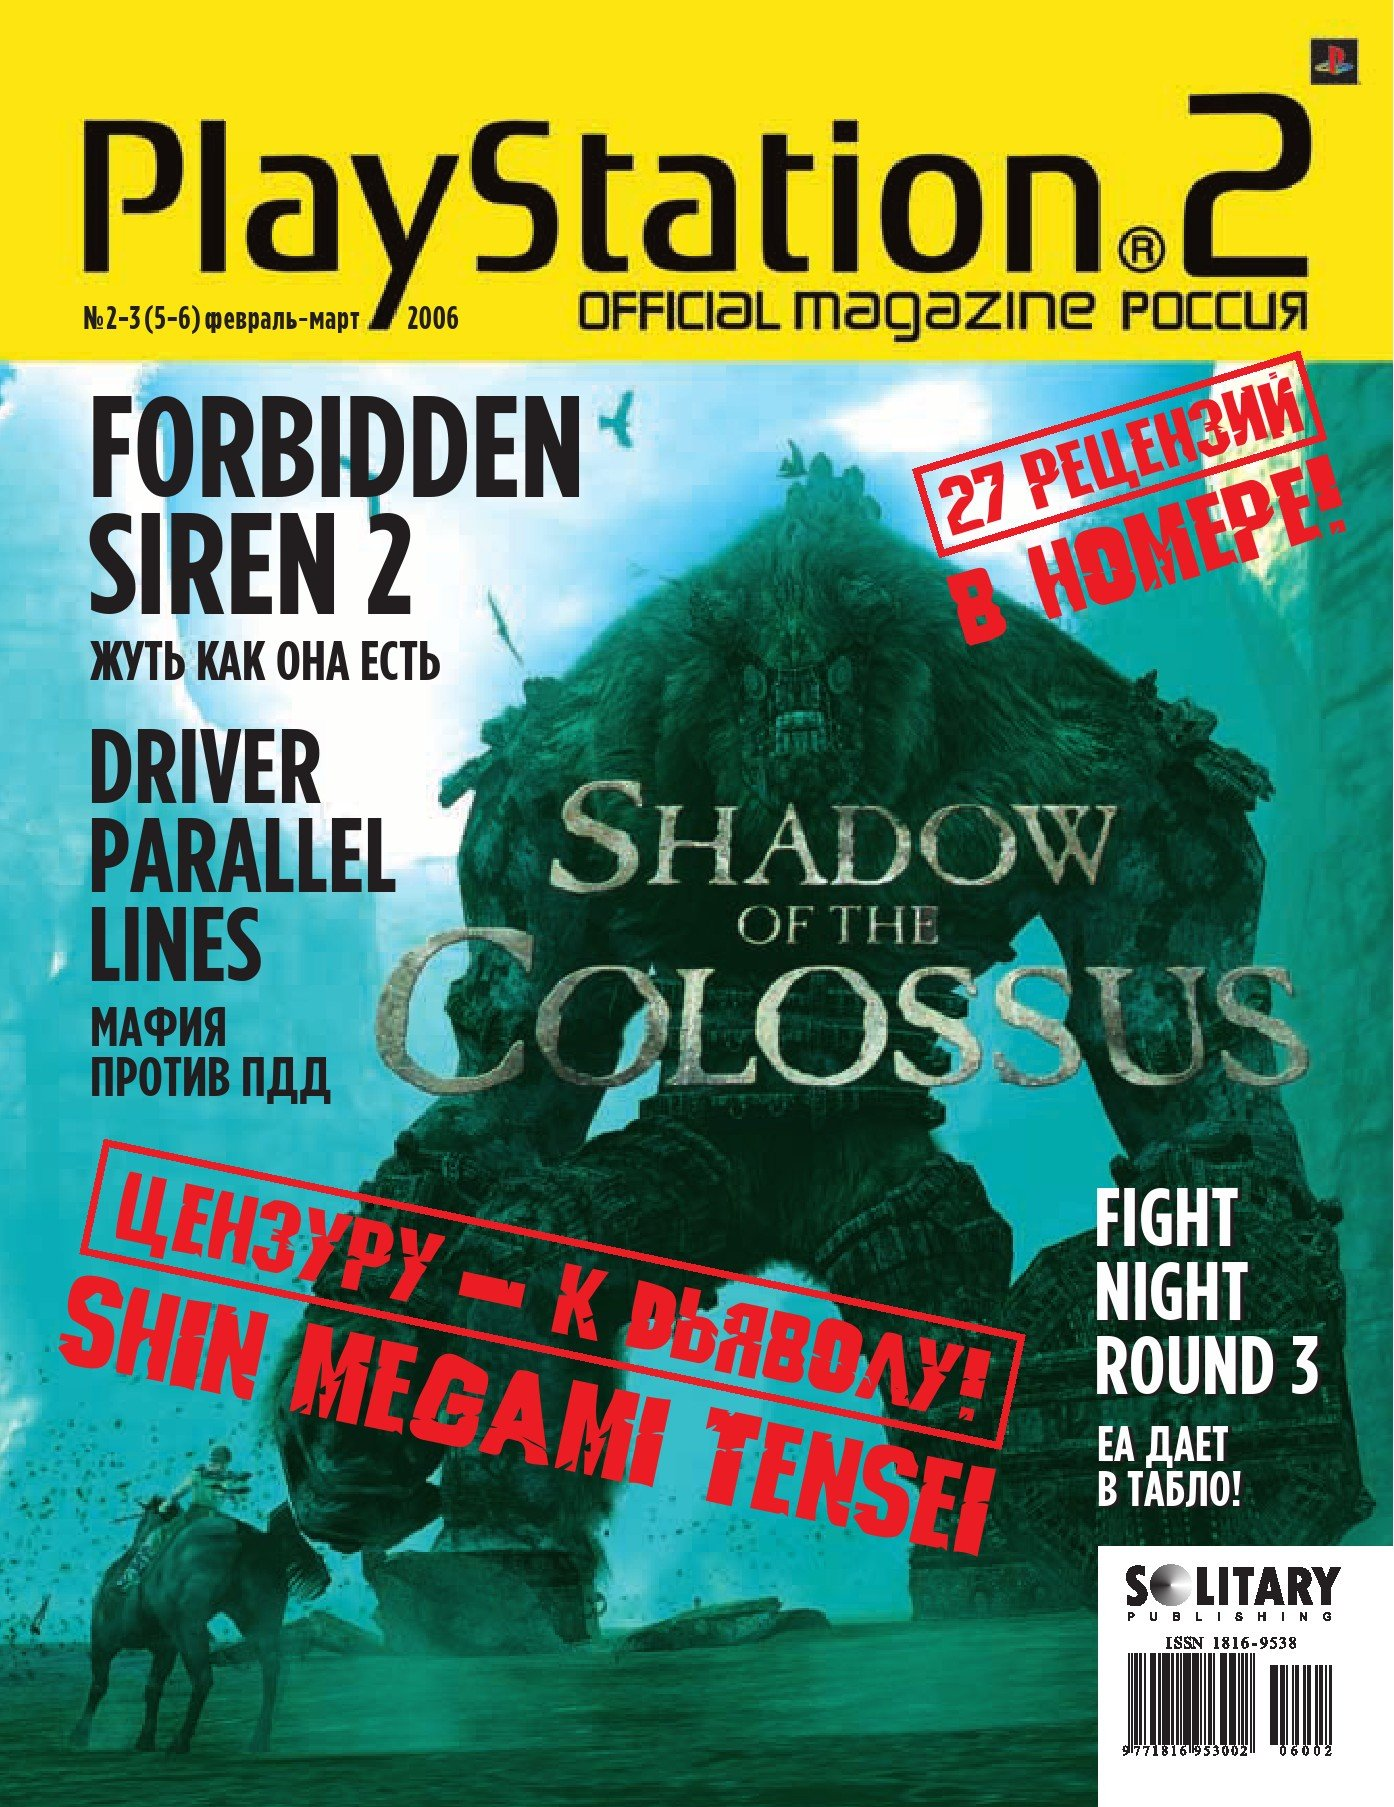 Playstation 2 Official Magazine (Russia) Issue 05/06 - Feb./Mar. '06